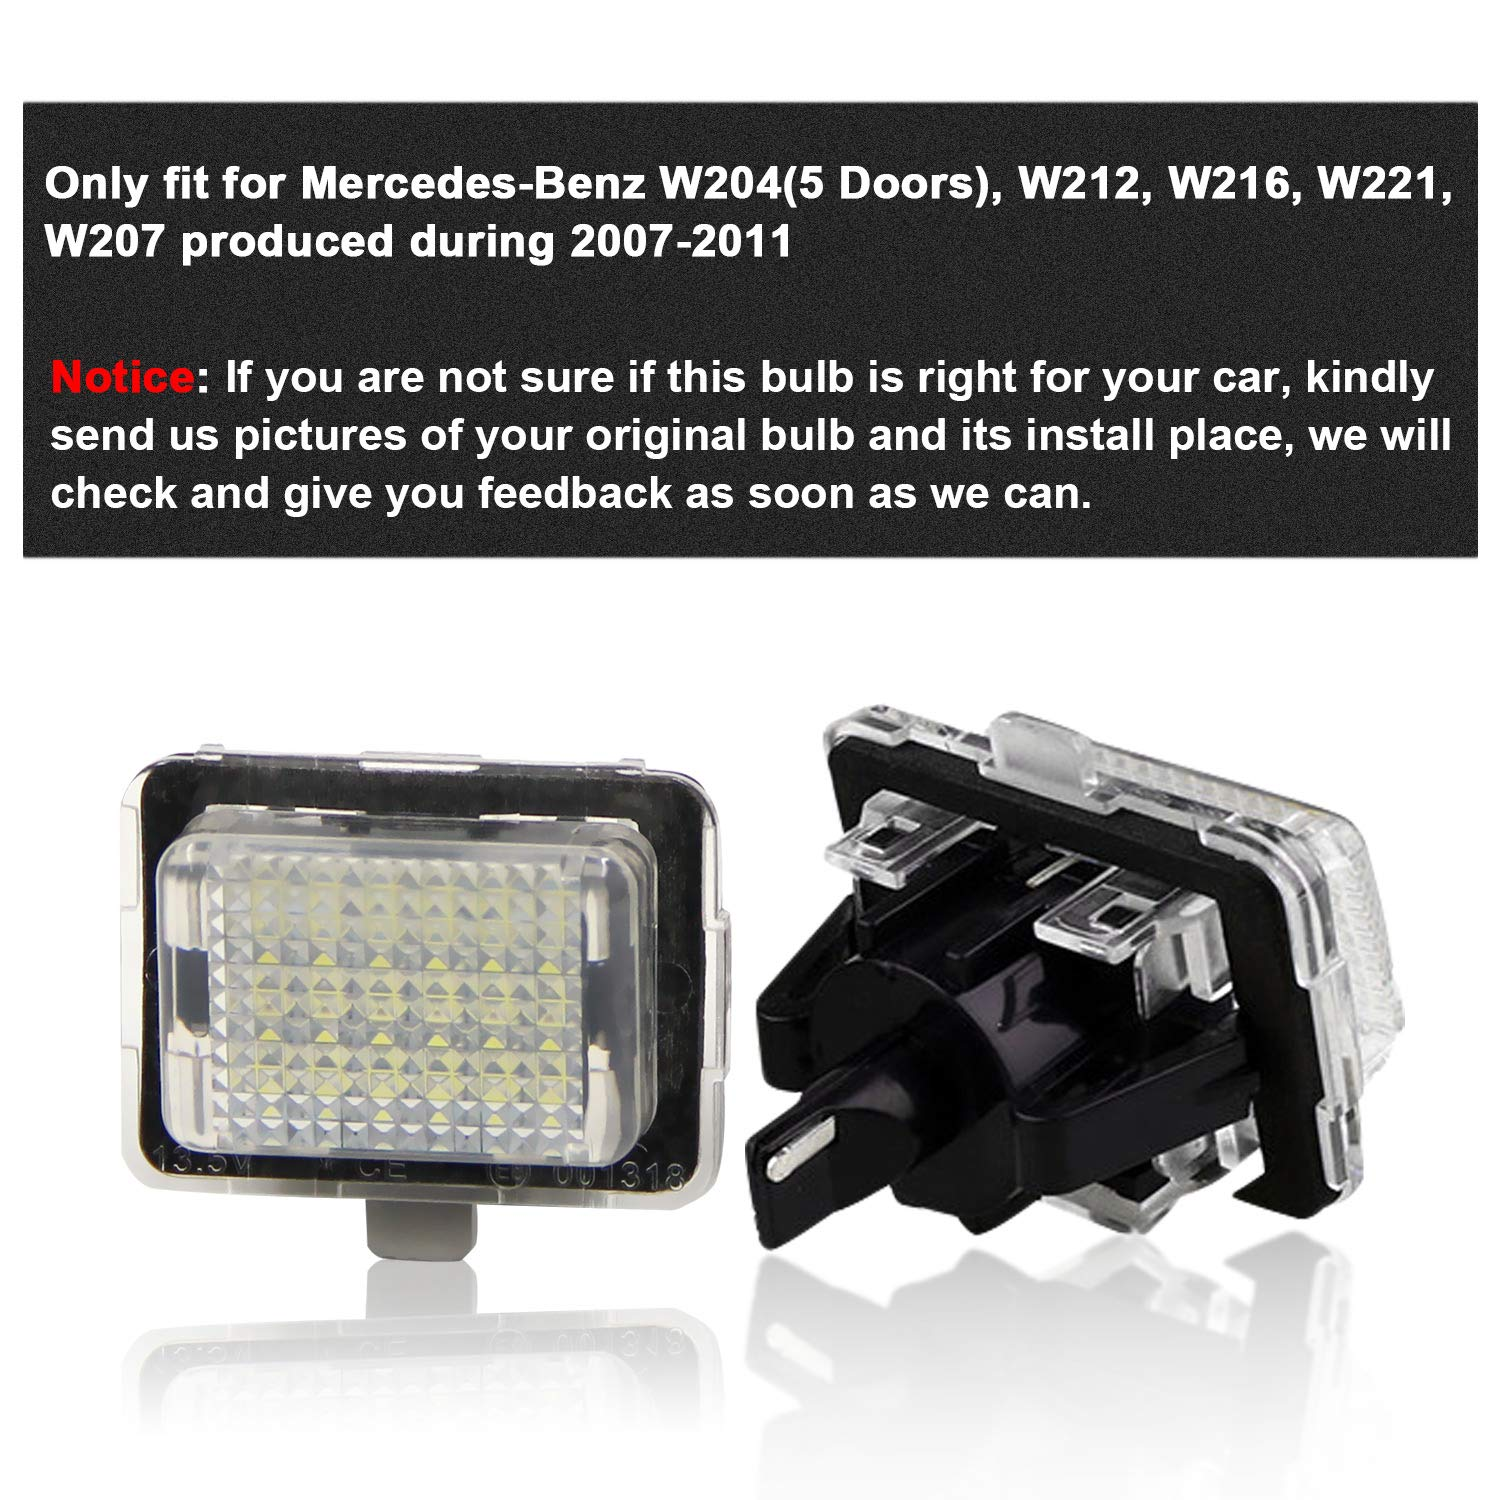 SY-024 Win Power Error Free LED Licence Number Plate Light Assembly Cool White Lamps Bulb for 3 Series E46 4D Sedan 325i 325xi,Pack of 2